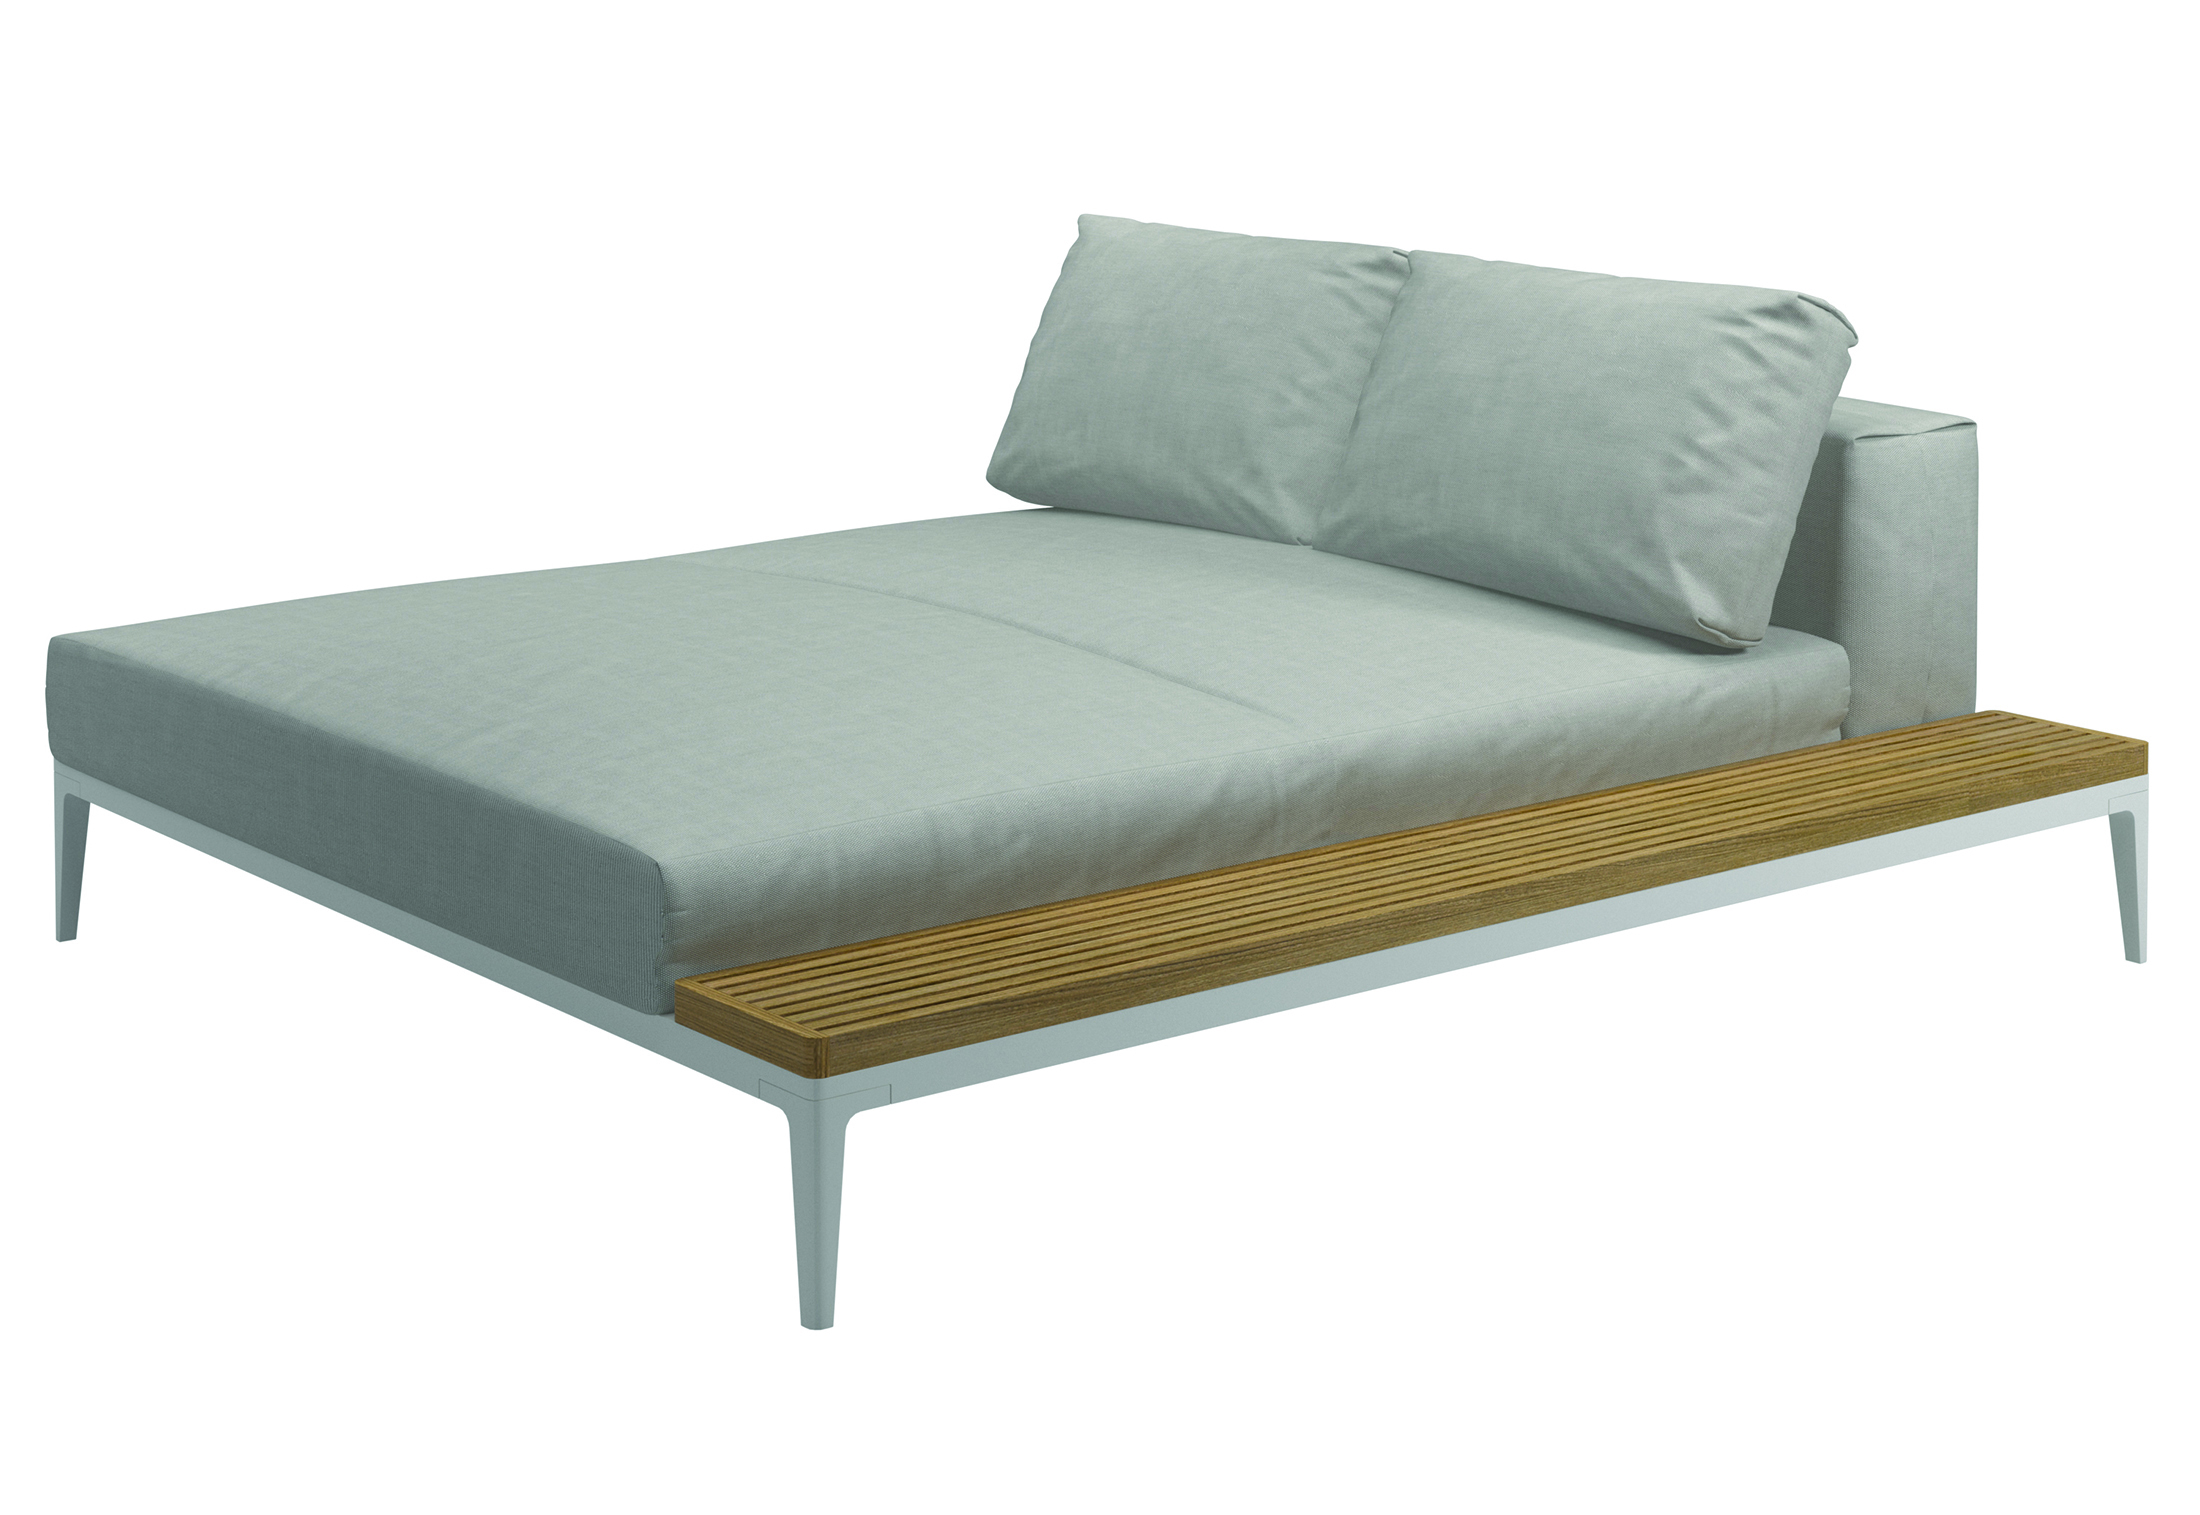 Grid chaise longue left right by gloster furniture stylepark for Chaise longue garden furniture